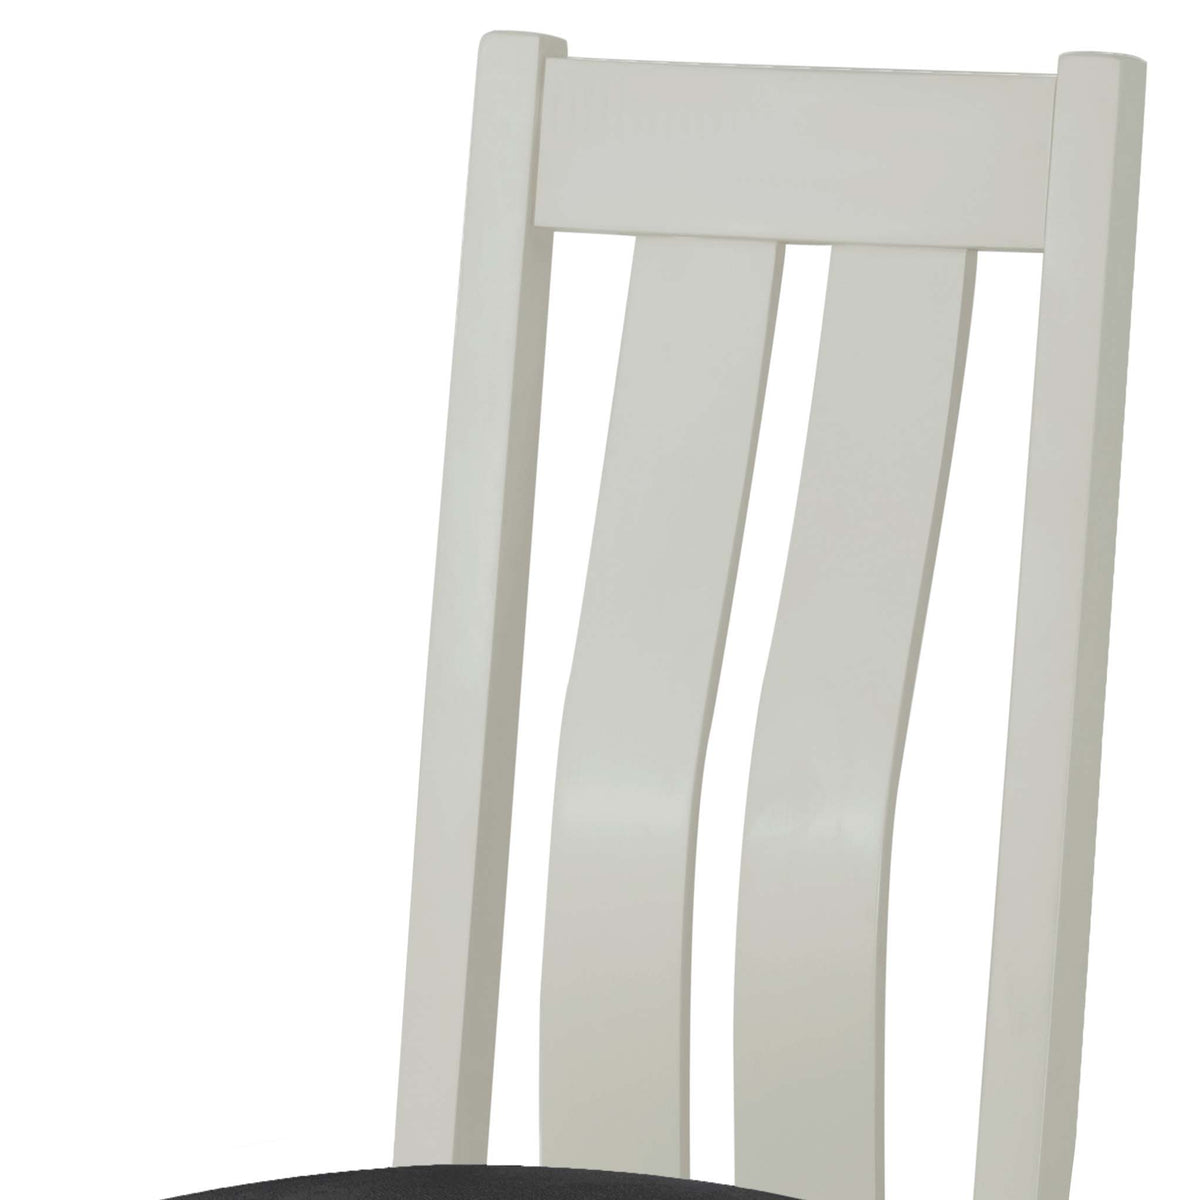 The Padstow Grey Wooden Dining Chair - Part of Dining Set - Close Up of Chair Back